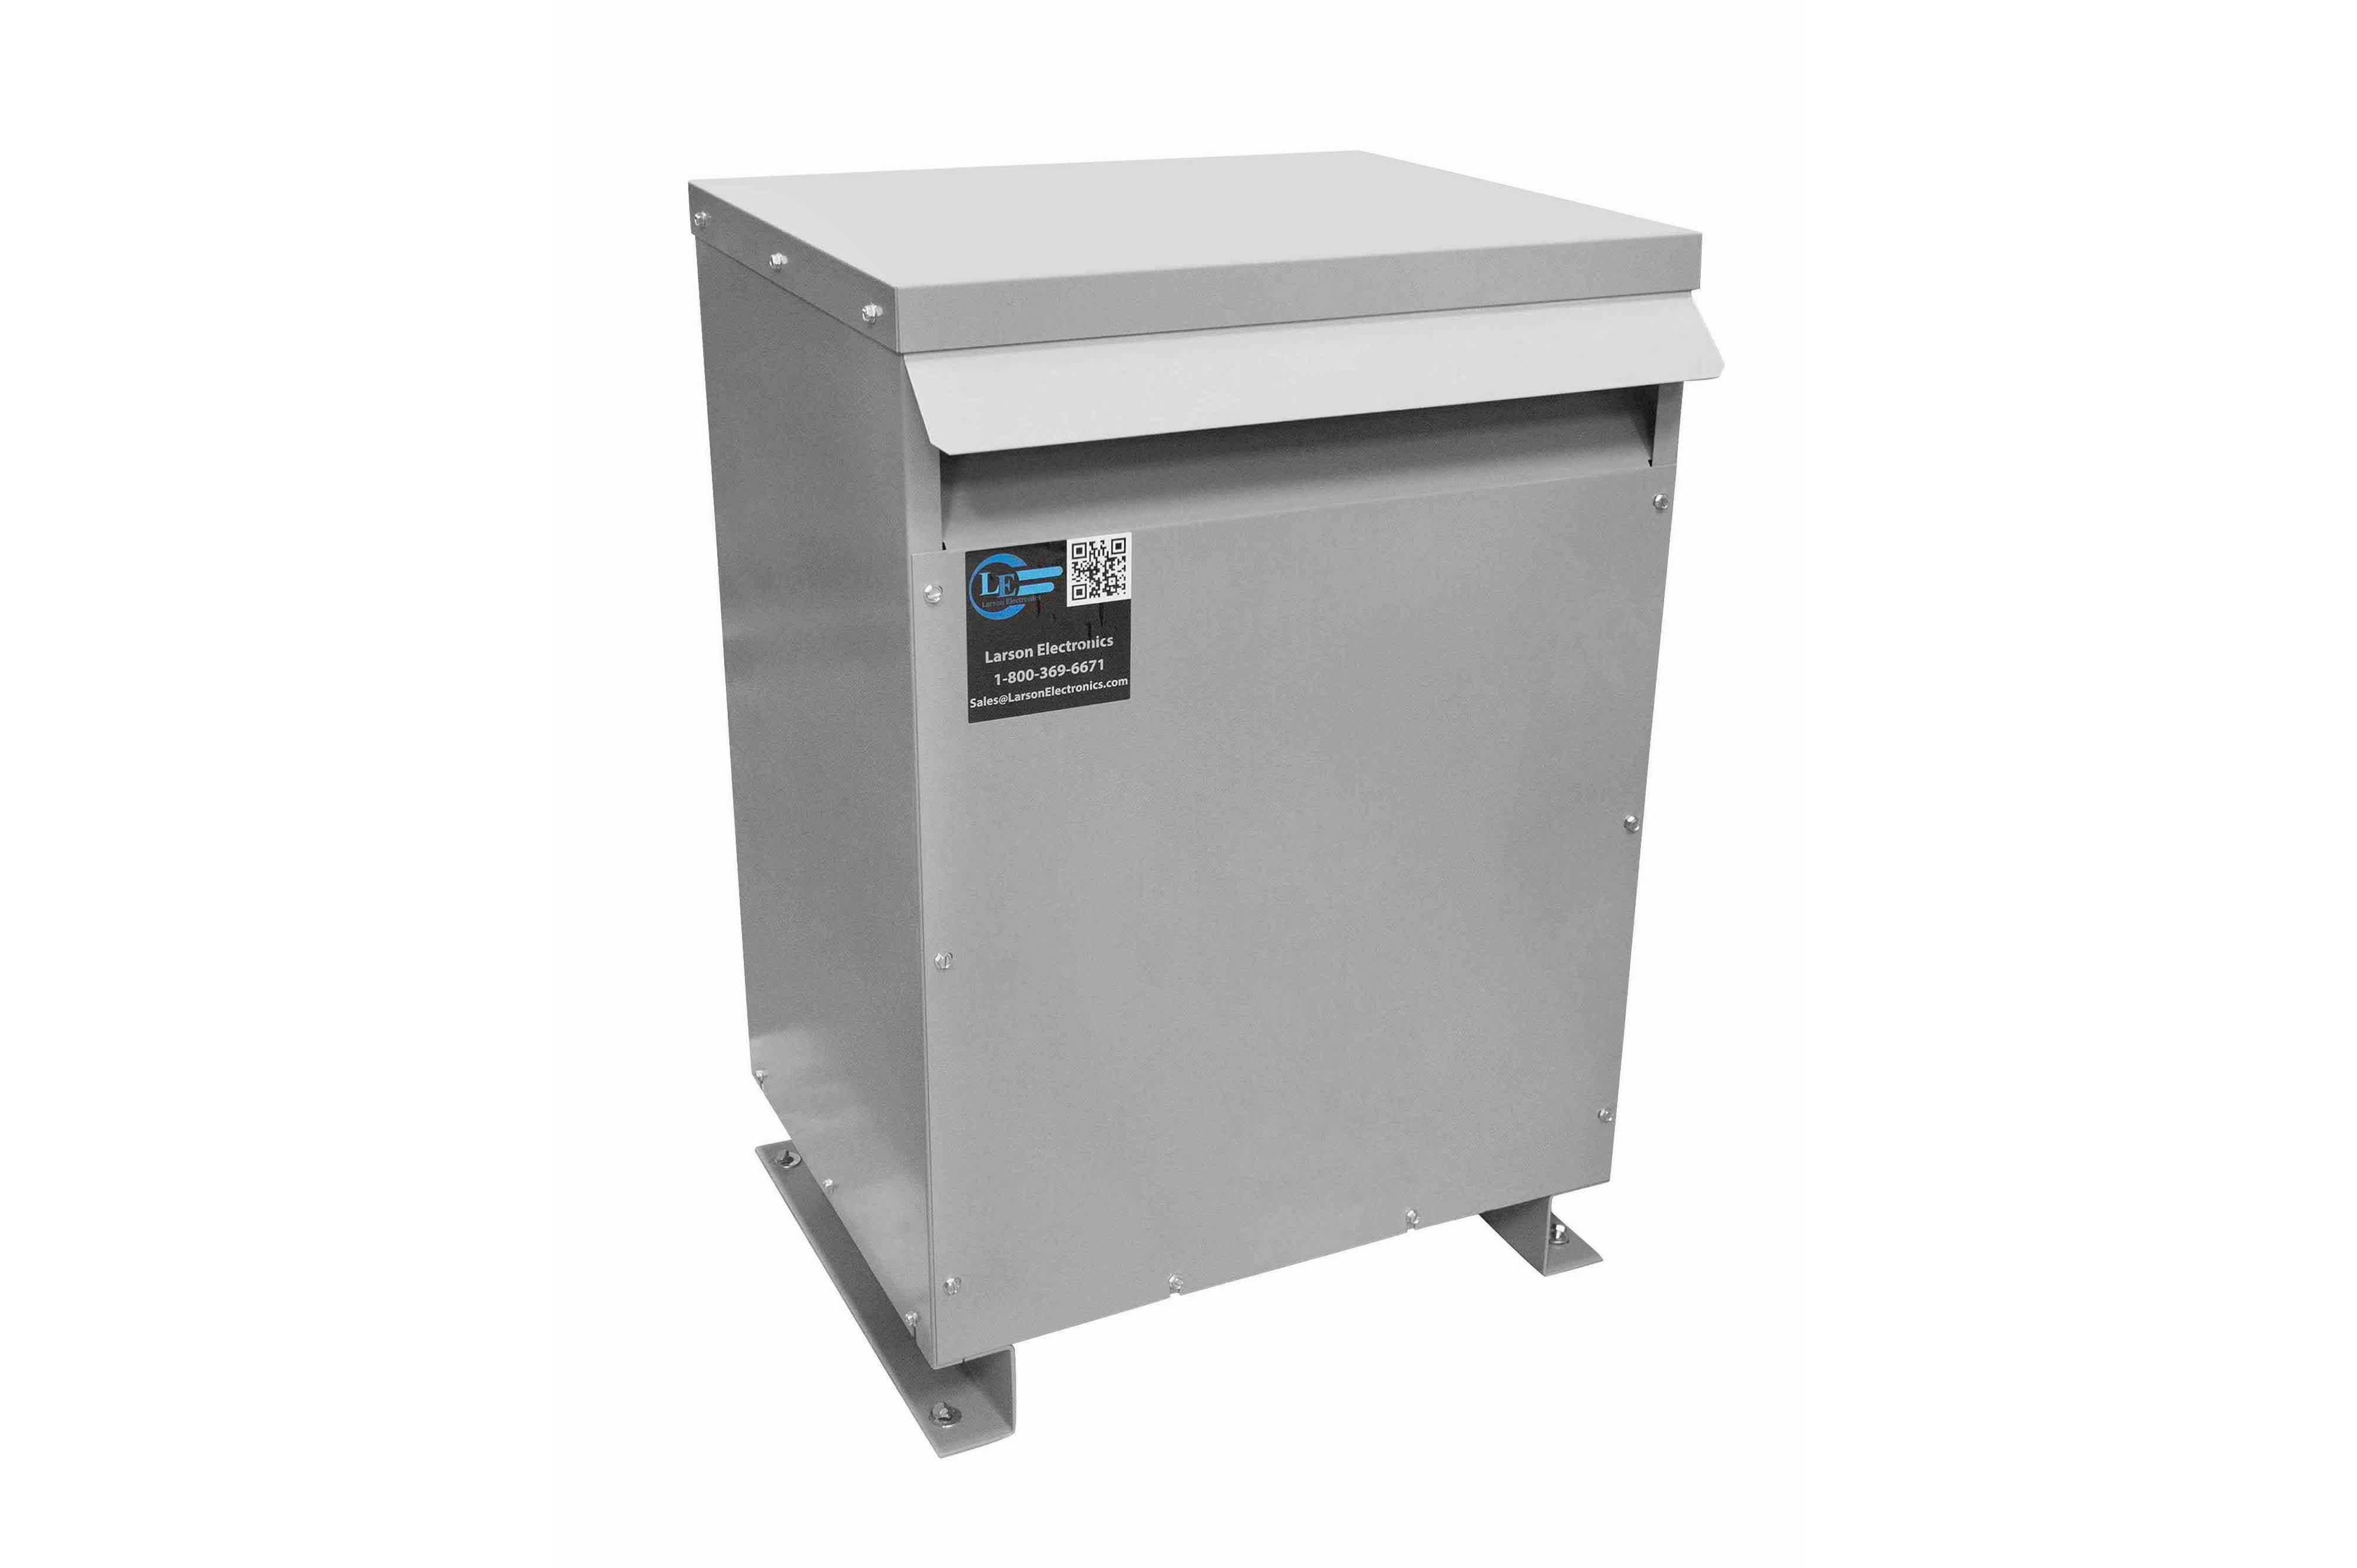 65 kVA 3PH Isolation Transformer, 480V Delta Primary, 208V Delta Secondary, N3R, Ventilated, 60 Hz